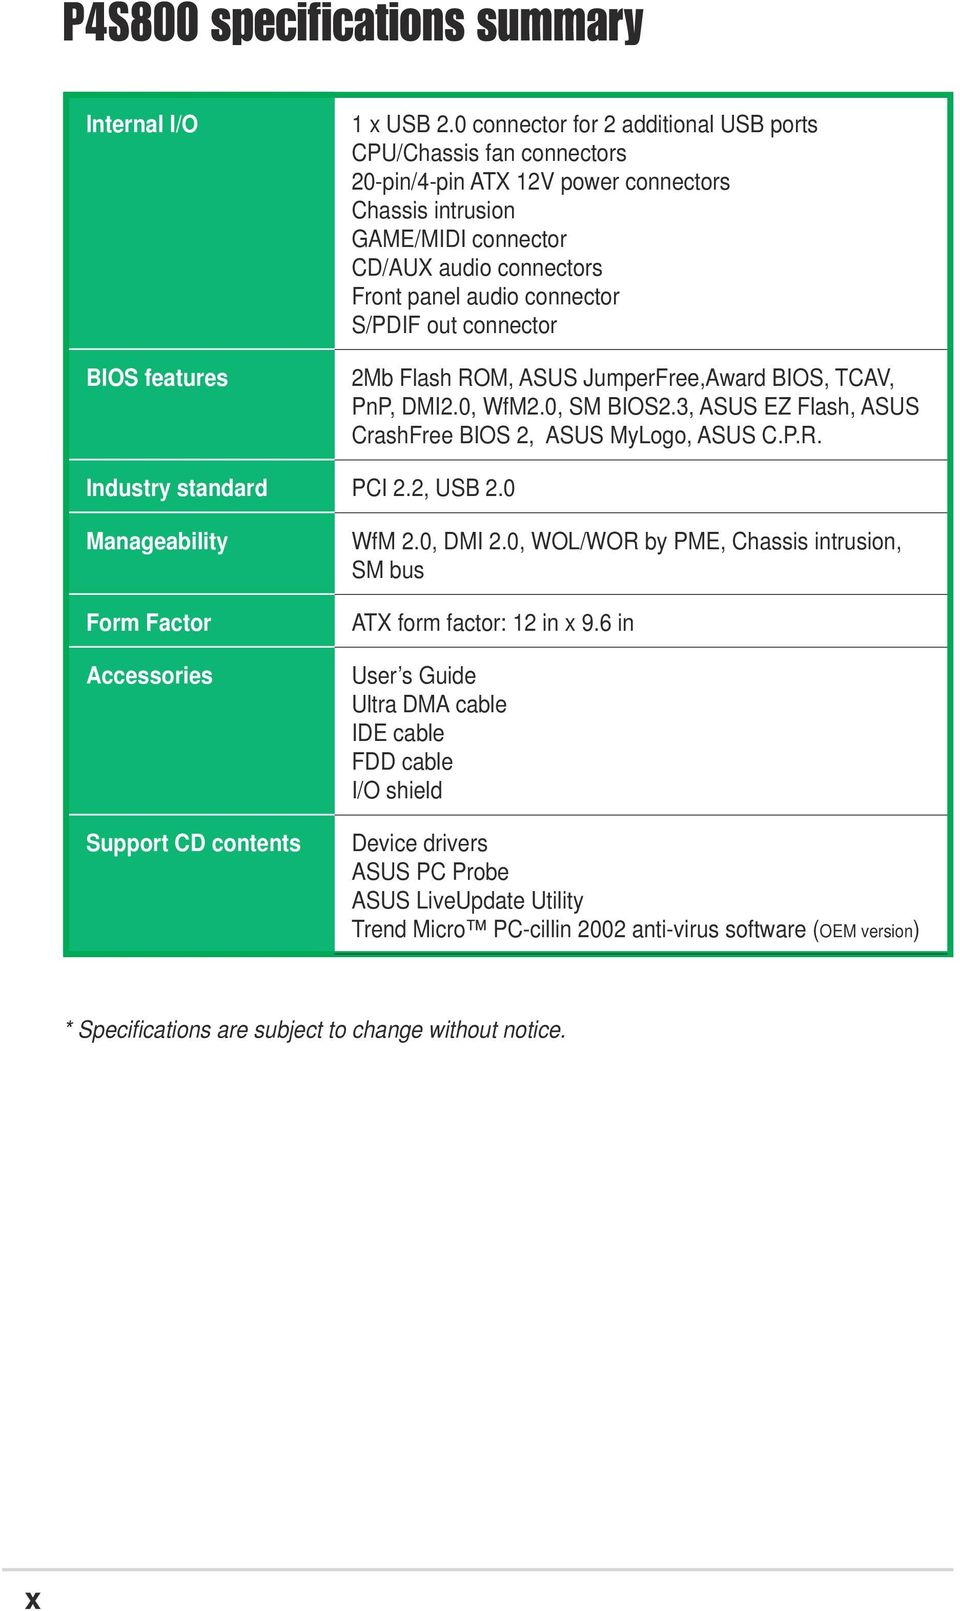 P4S800  User Guide  Motherboard - PDF